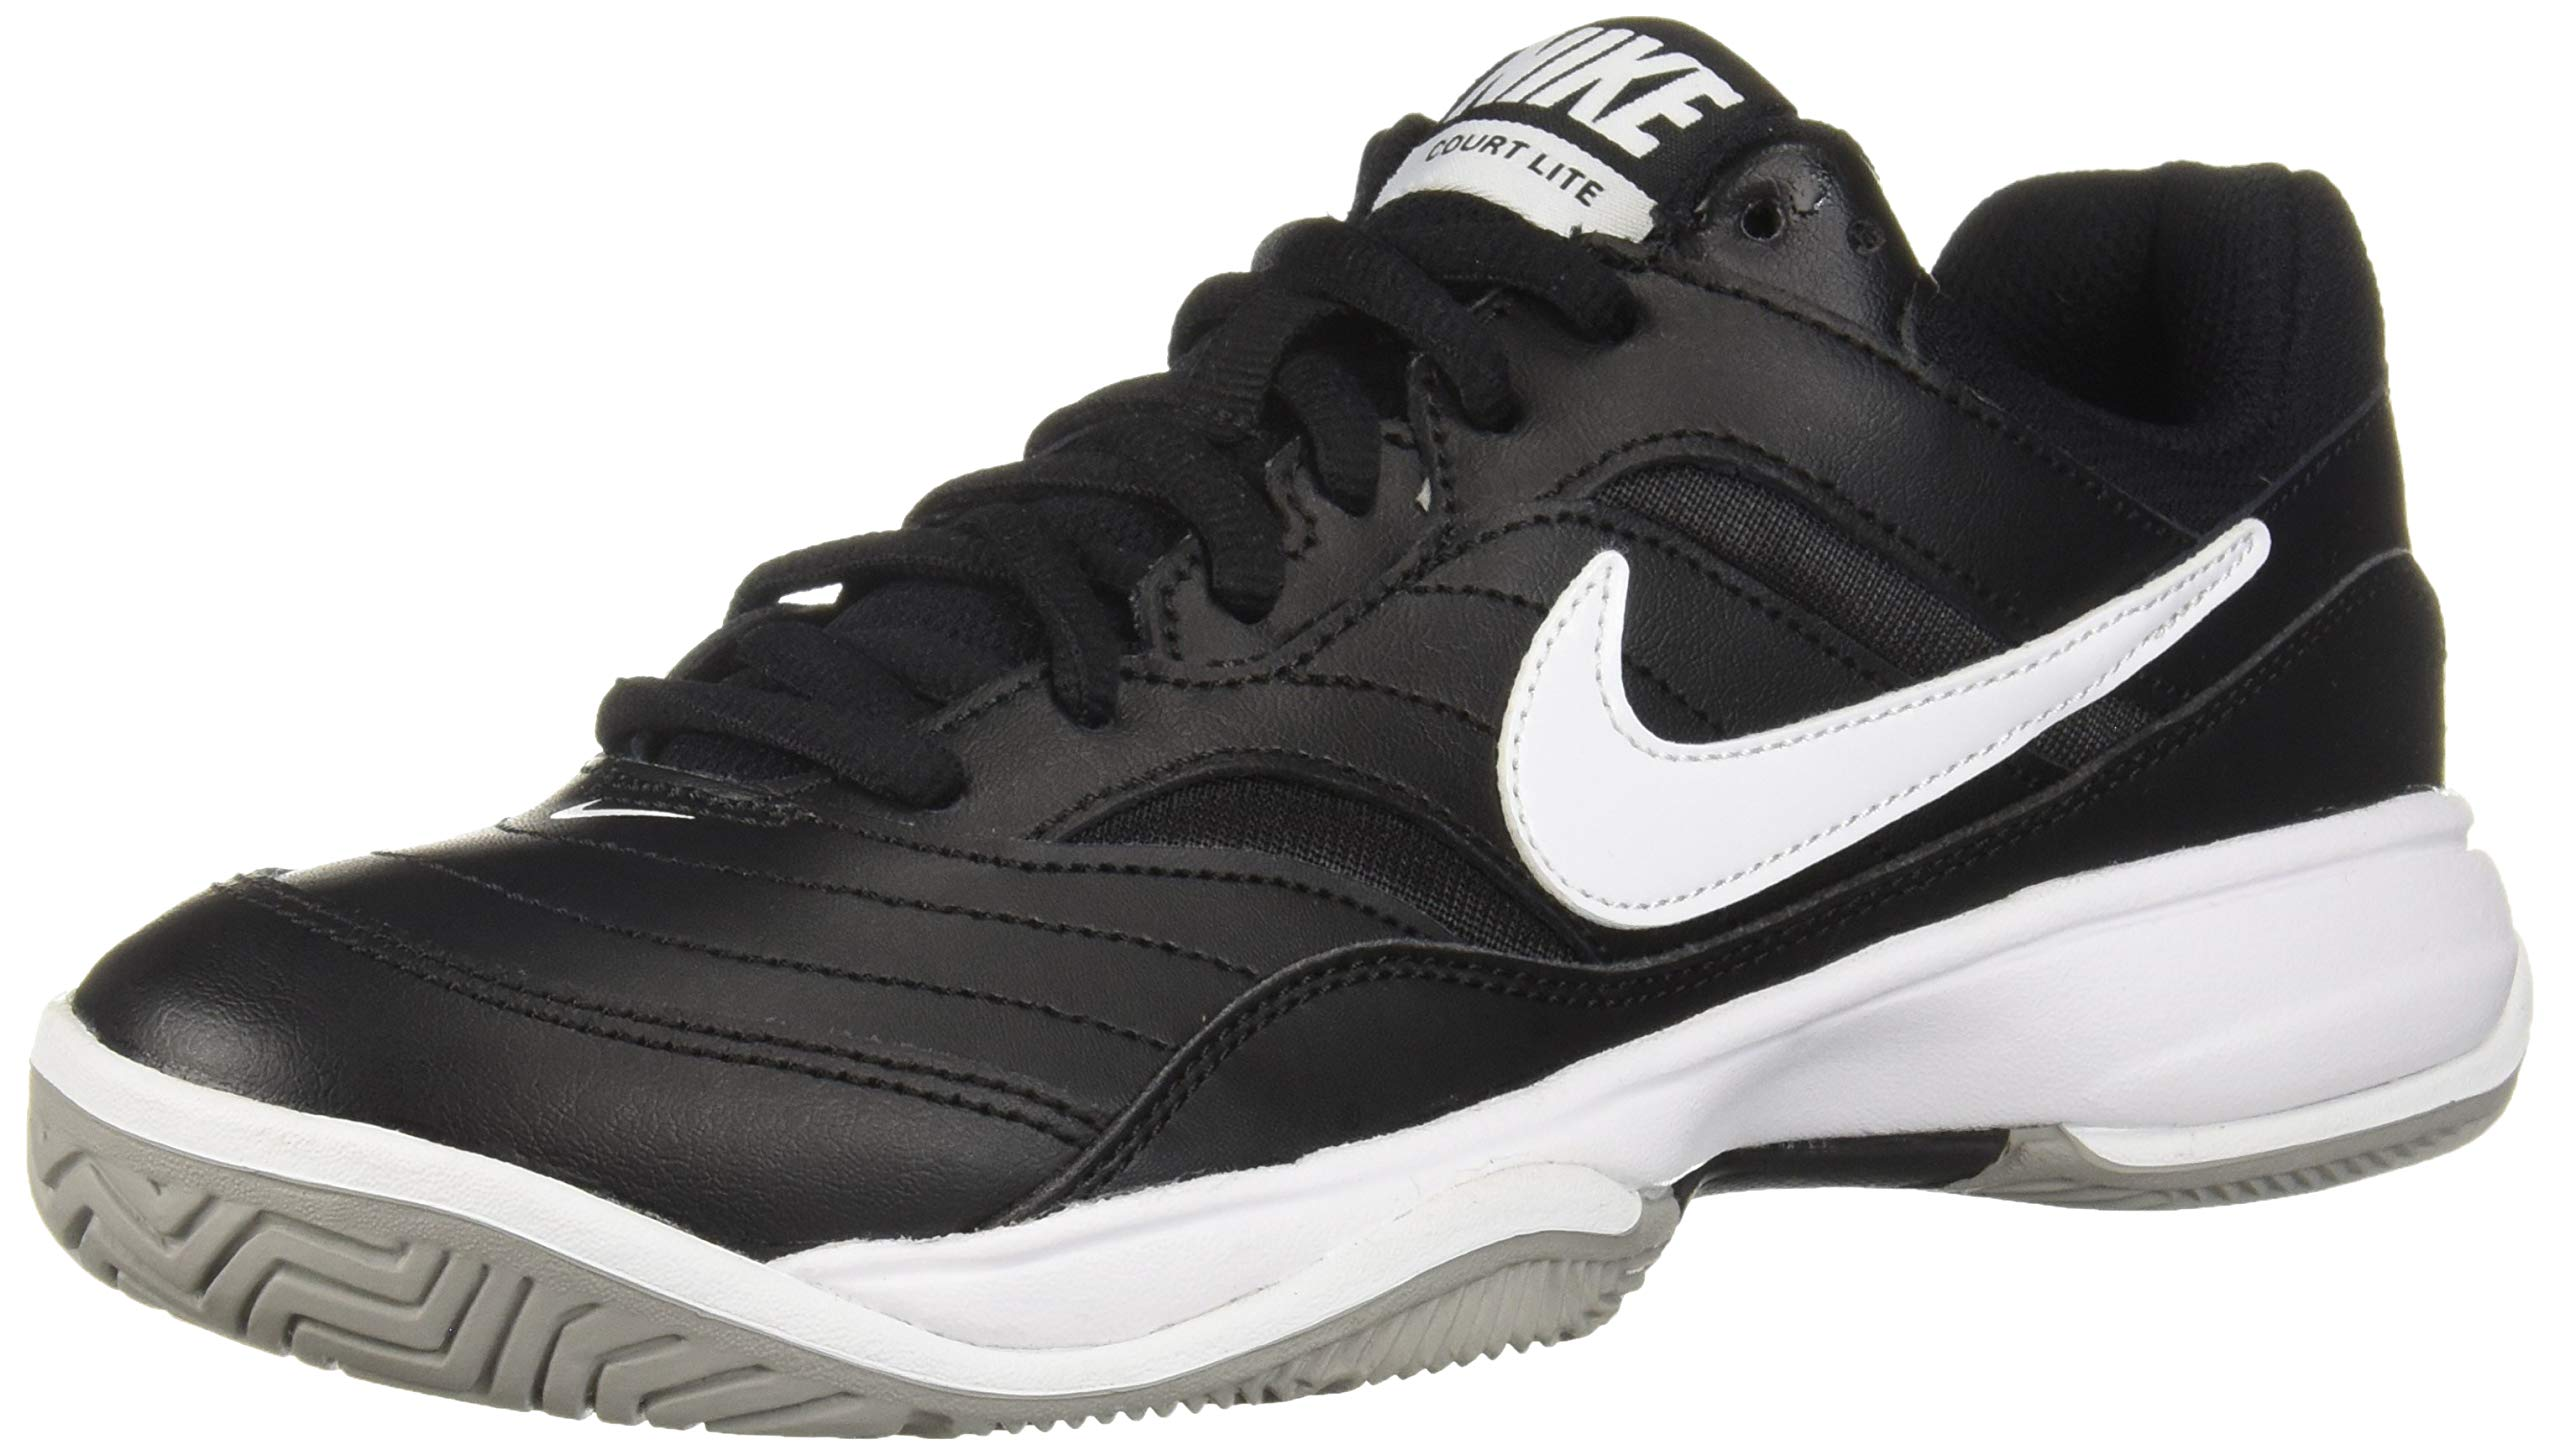 NIKE Men's Court Lite Athletic Shoe, Black/White/Medium Grey, 7.5 Regular US by Nike (Image #1)